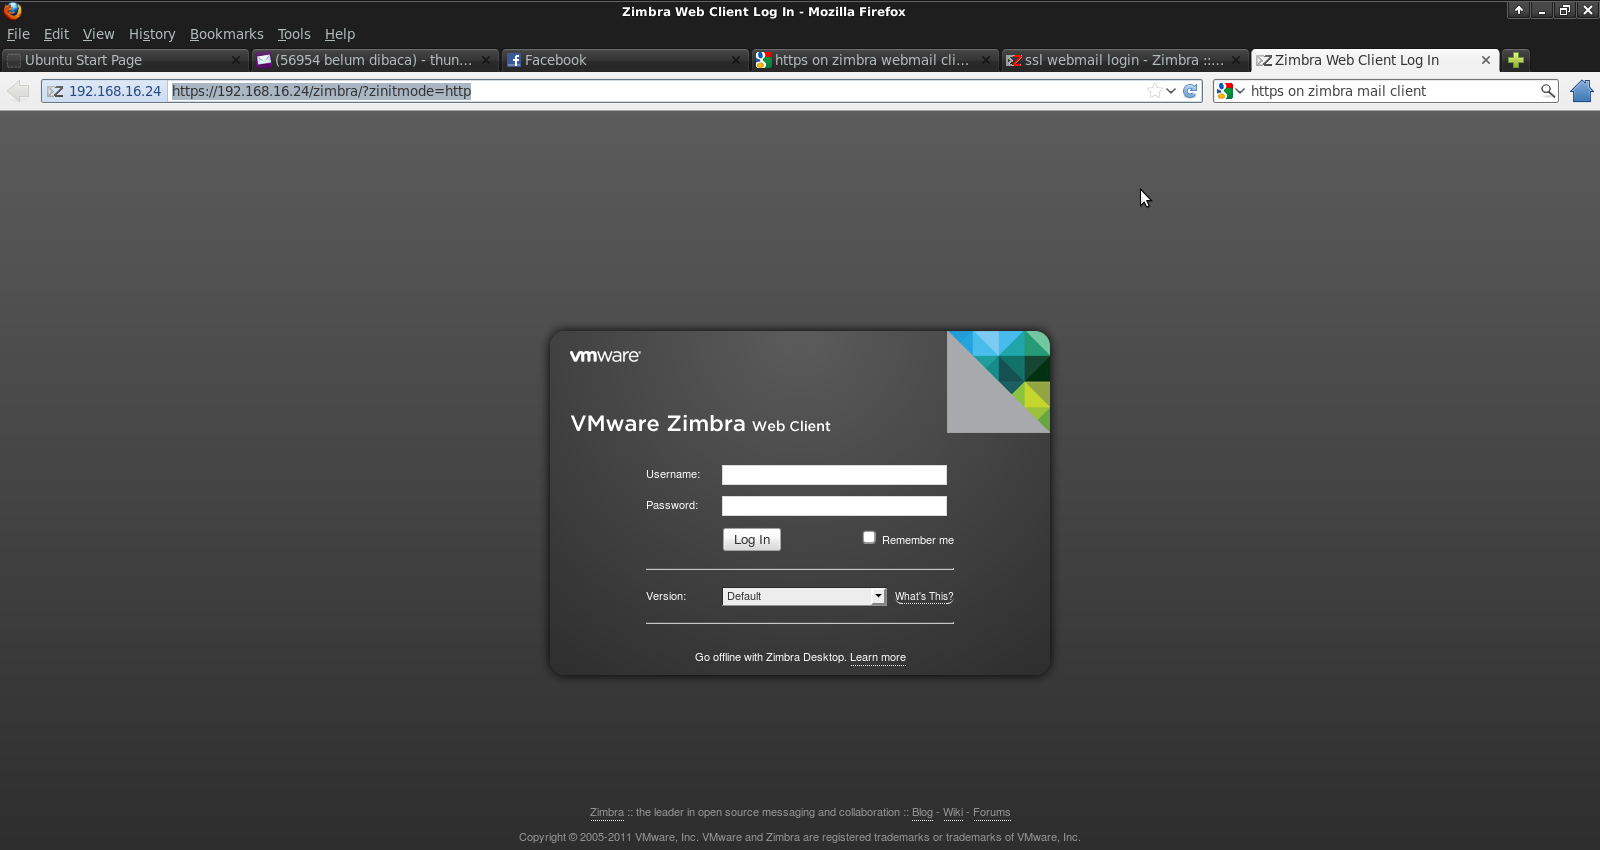 Zimbra Sign In